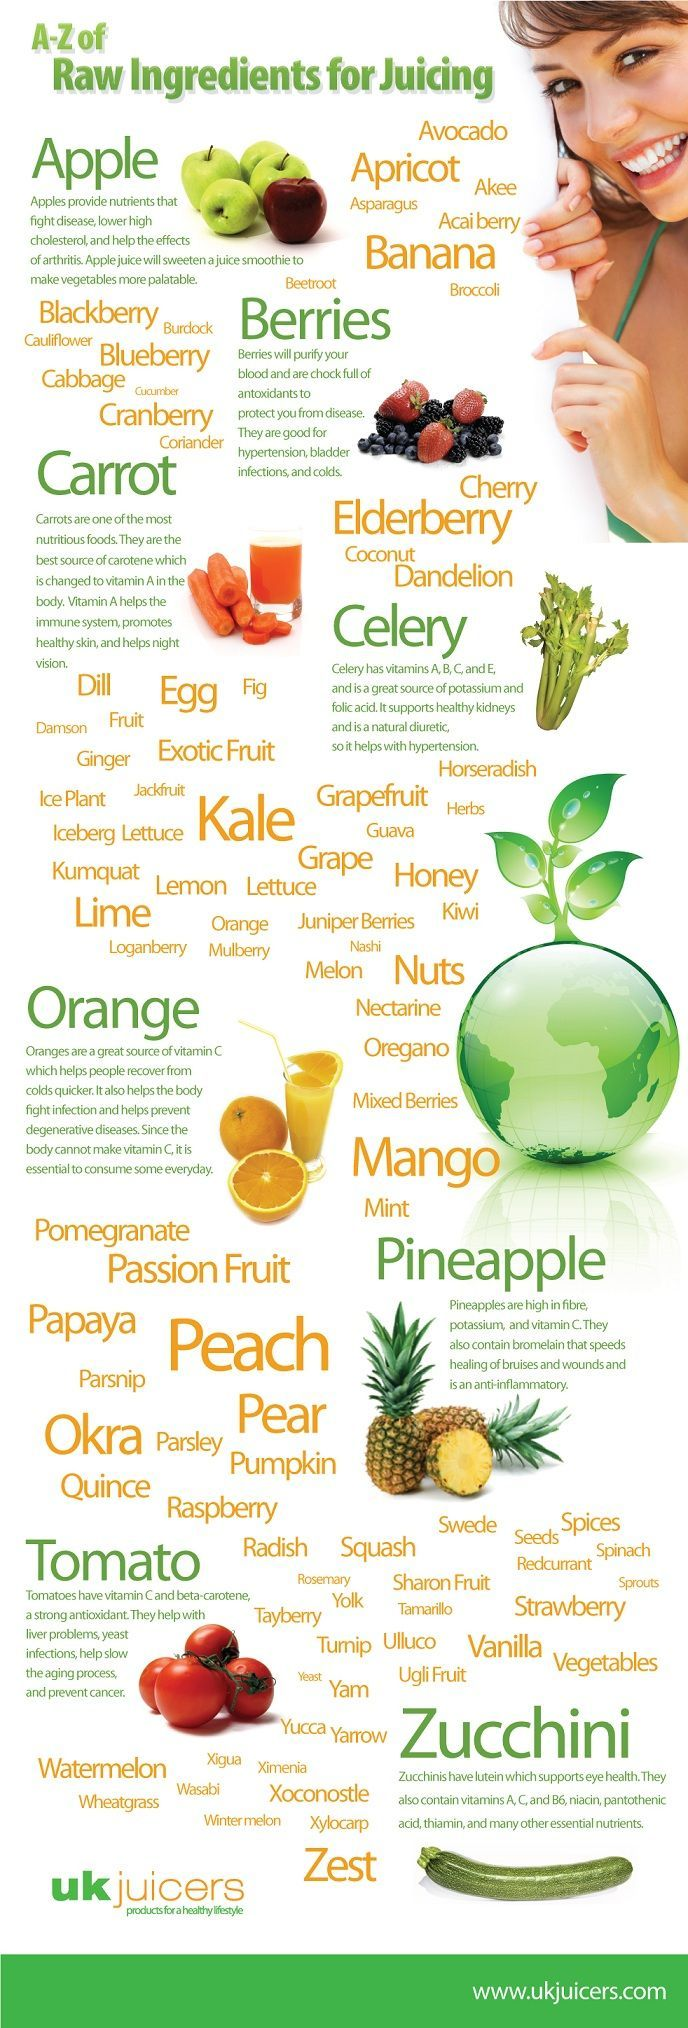 Juicing ingredients from A-Z